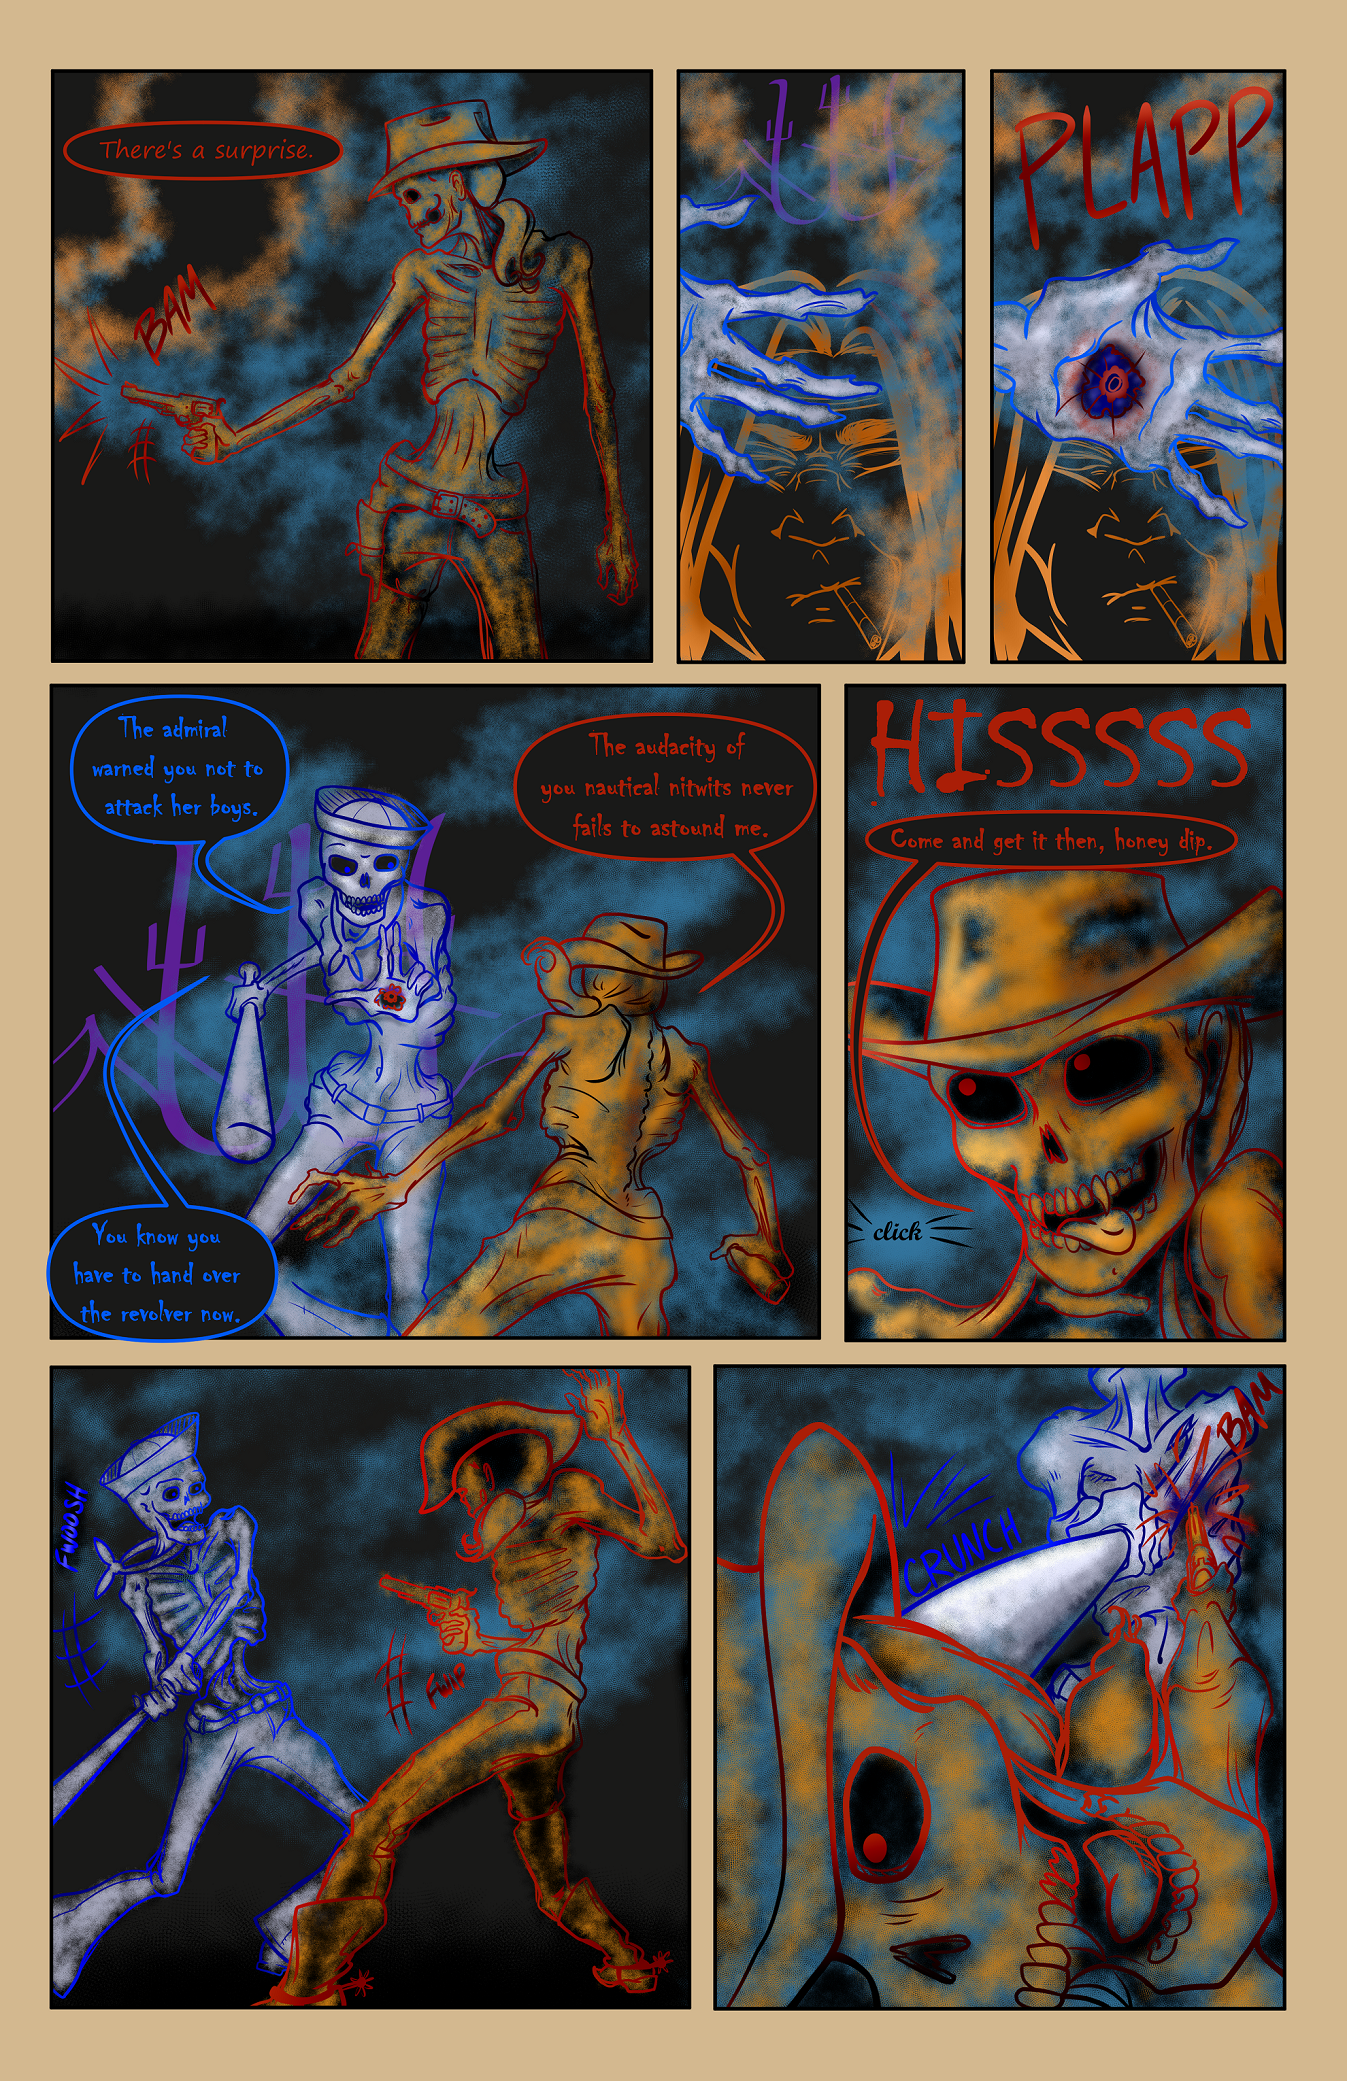 Ch 5: Page 23